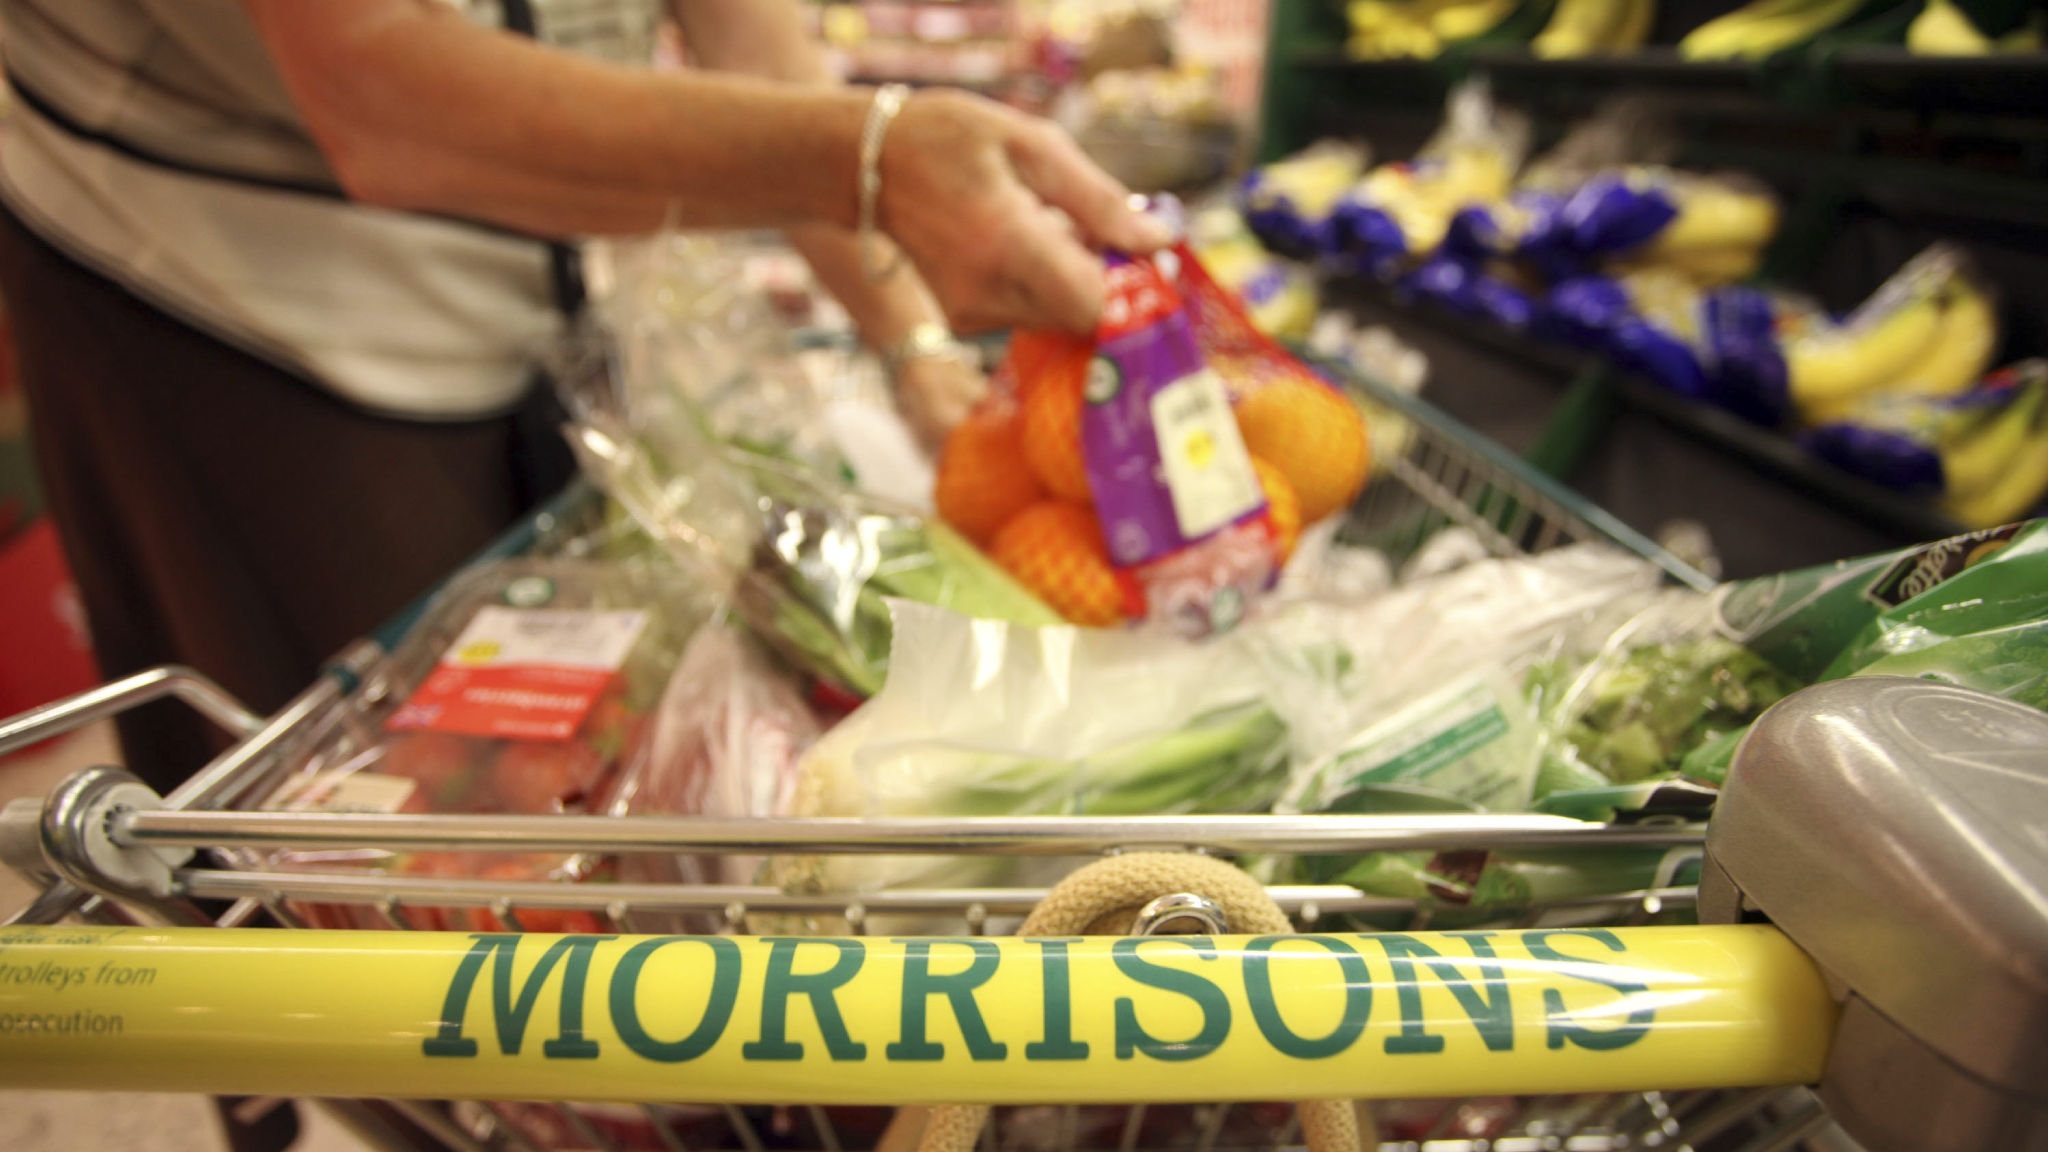 Amazon and Wm Morrison: food retail's odd couple have